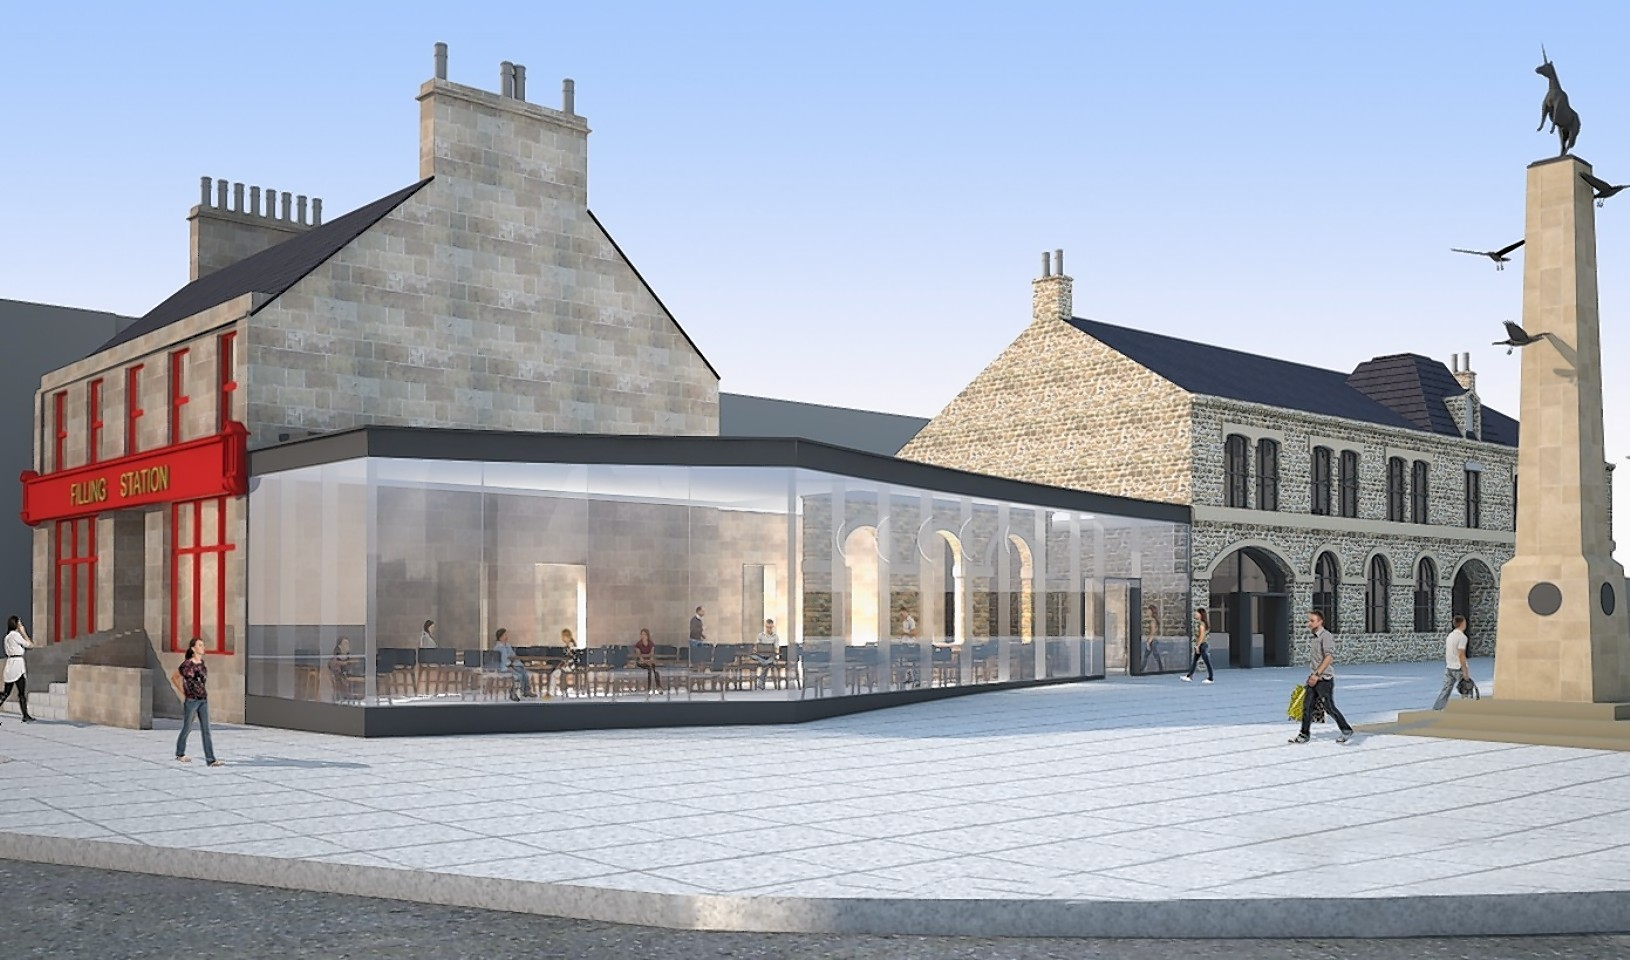 The rejected artist's impression of the proposals for the Filling Station in Inverness.